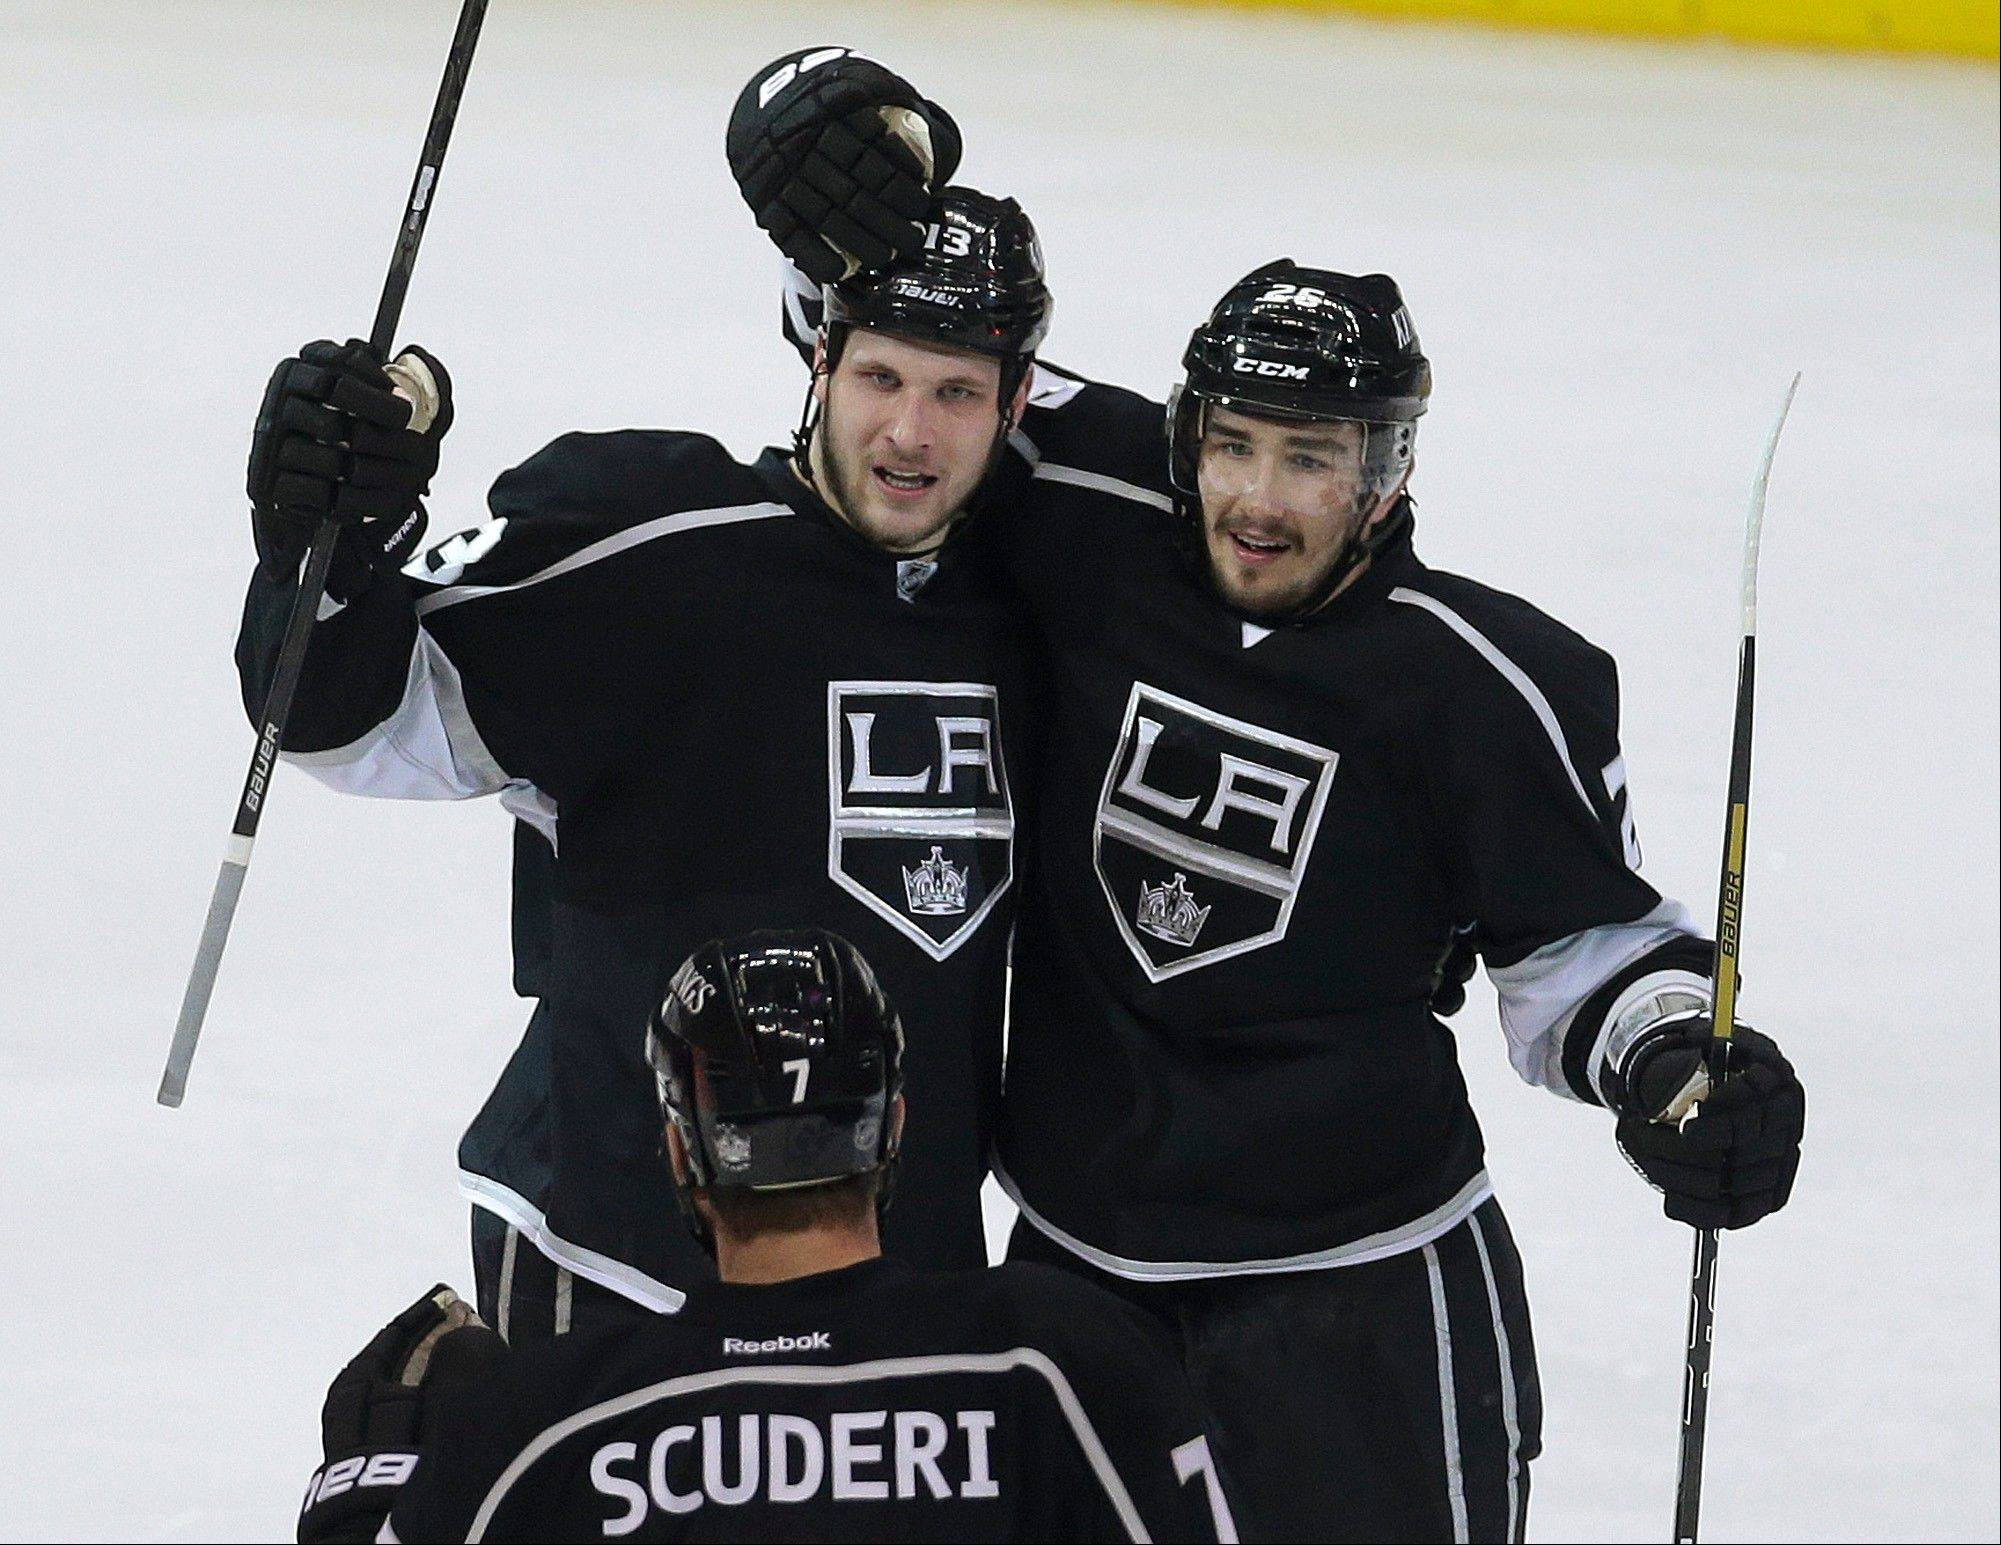 Los Angeles Kings defenseman Slava Voynov, right, celebrates with Kyle Clifford and Rob Scuderi after his goal against the Chicago Blackhawks during the first period in Game 4 of the NHL hockey Stanley Cup Western Conference finals, in Los Angeles on Thursday, June 6, 2013.